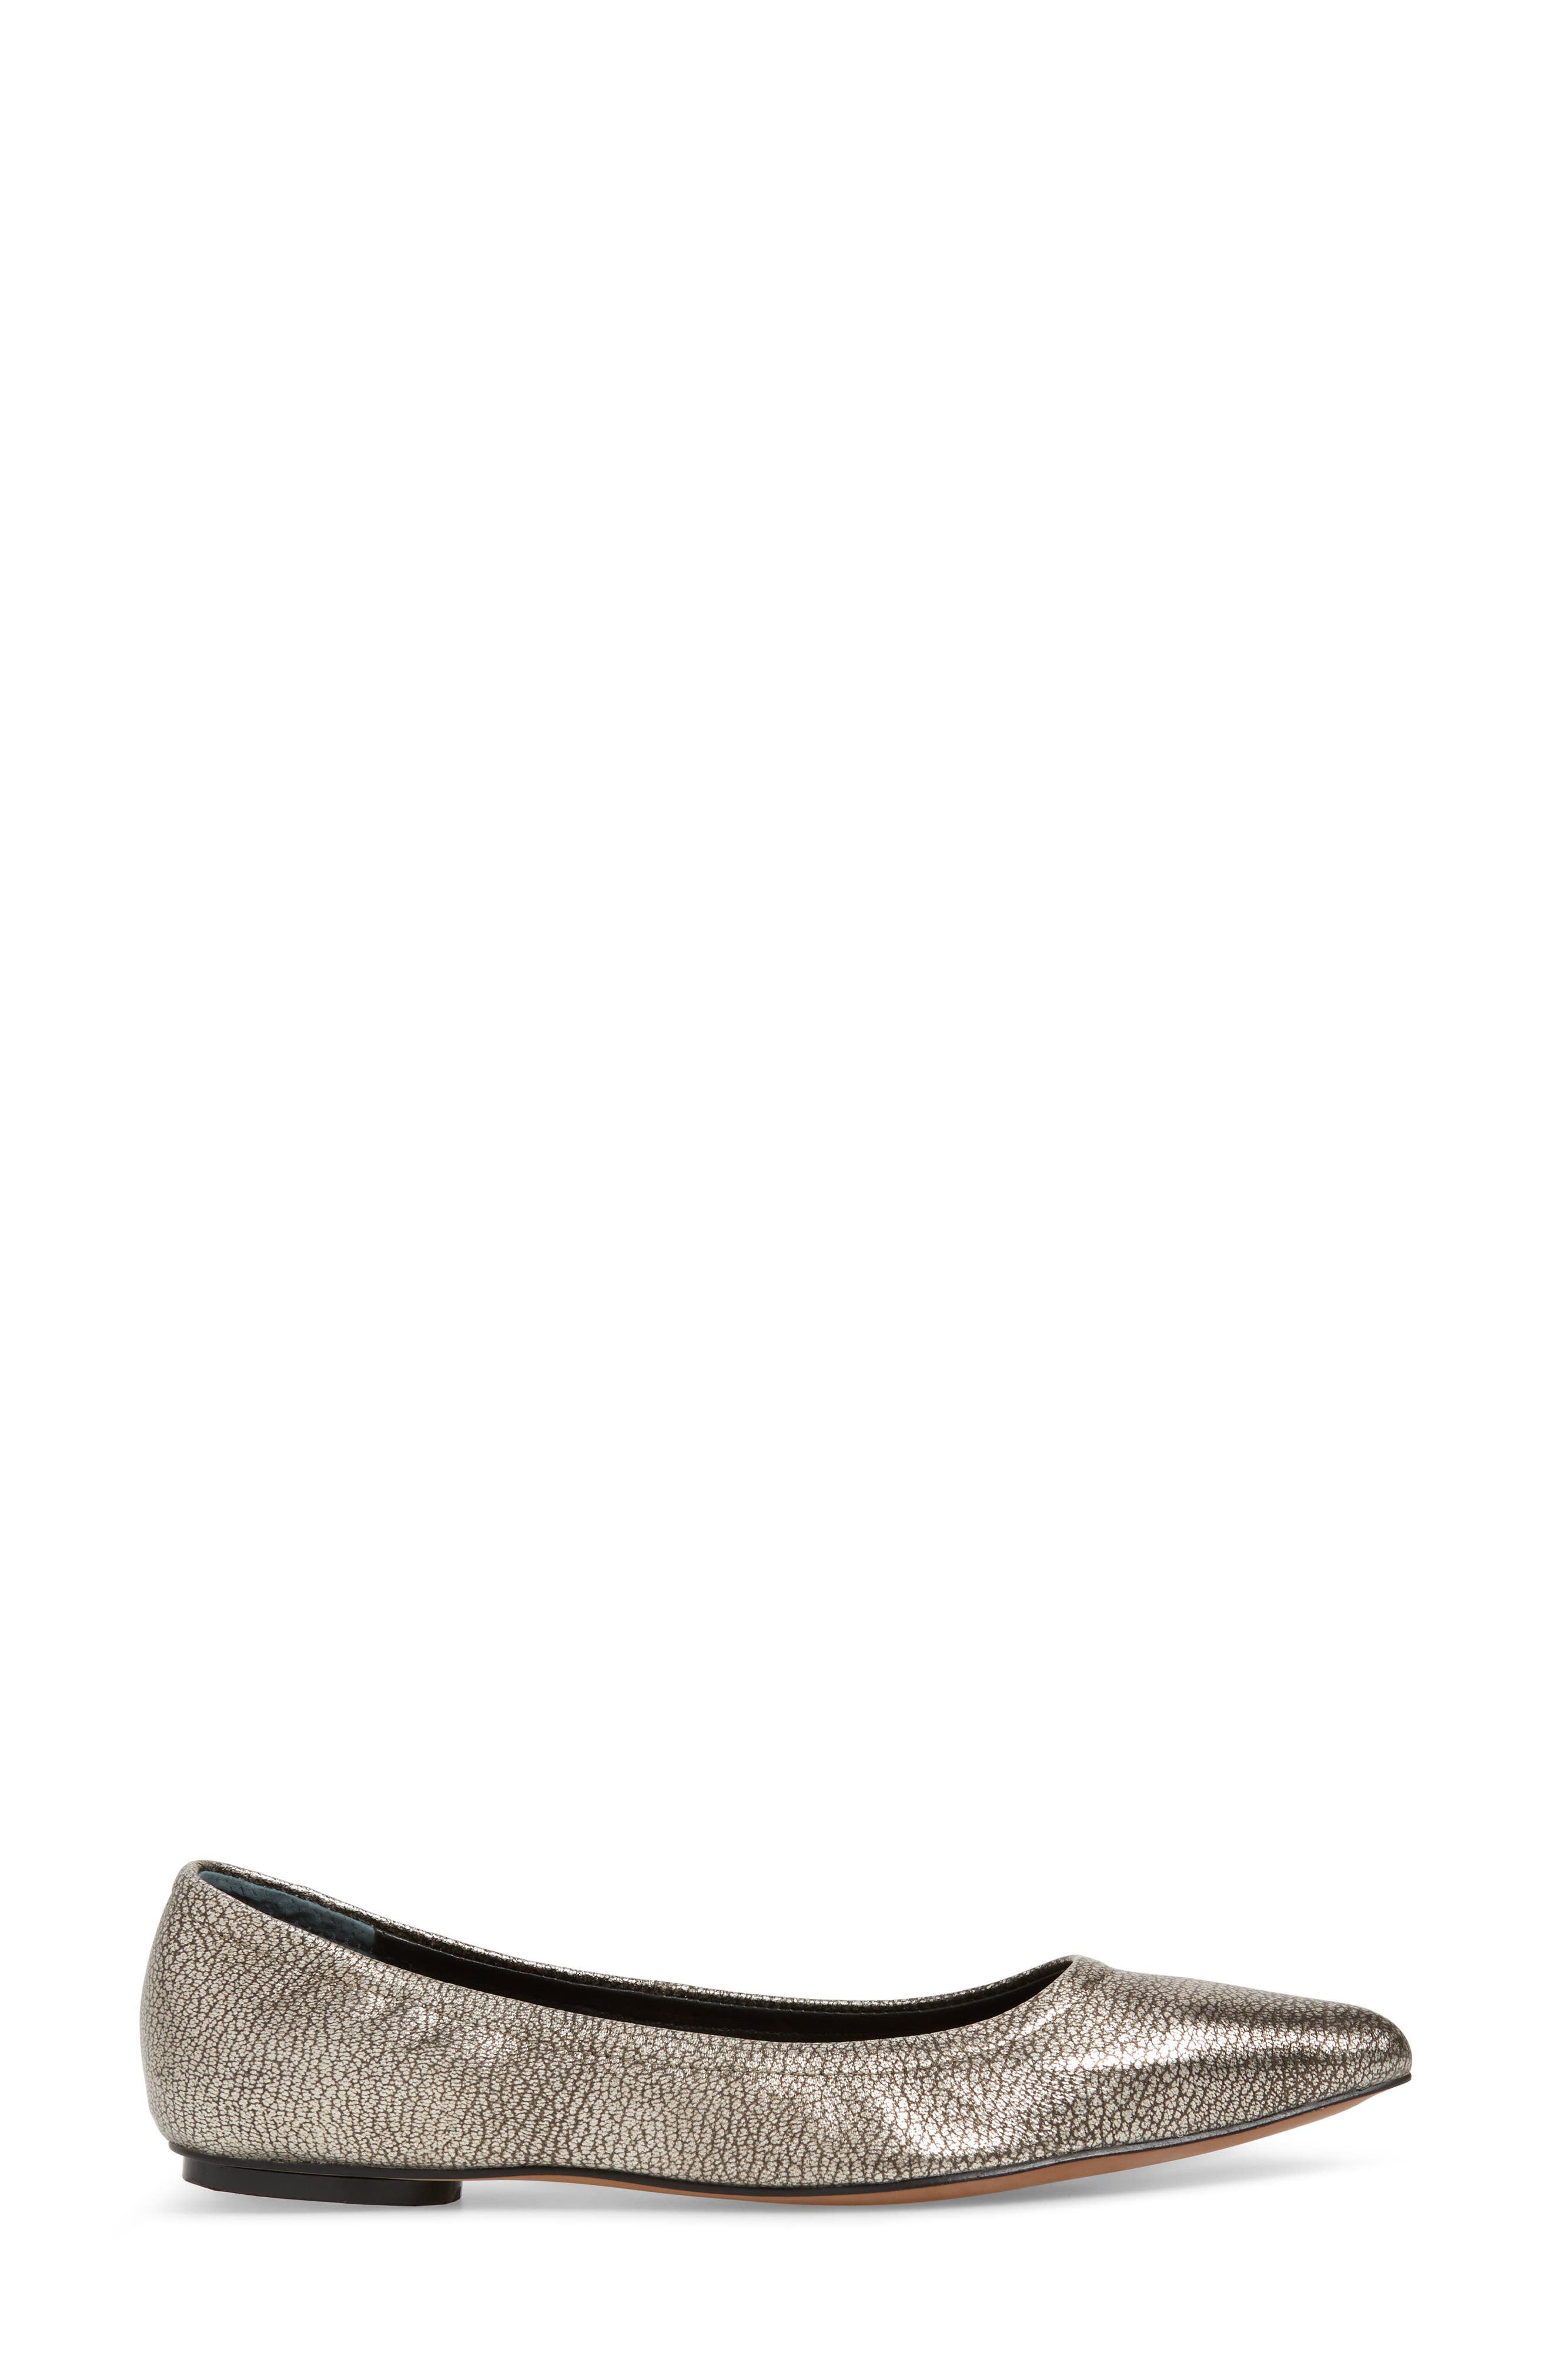 Nico Pointy Toe Flat,                             Alternate thumbnail 3, color,                             ANTHRACITE LEATHER